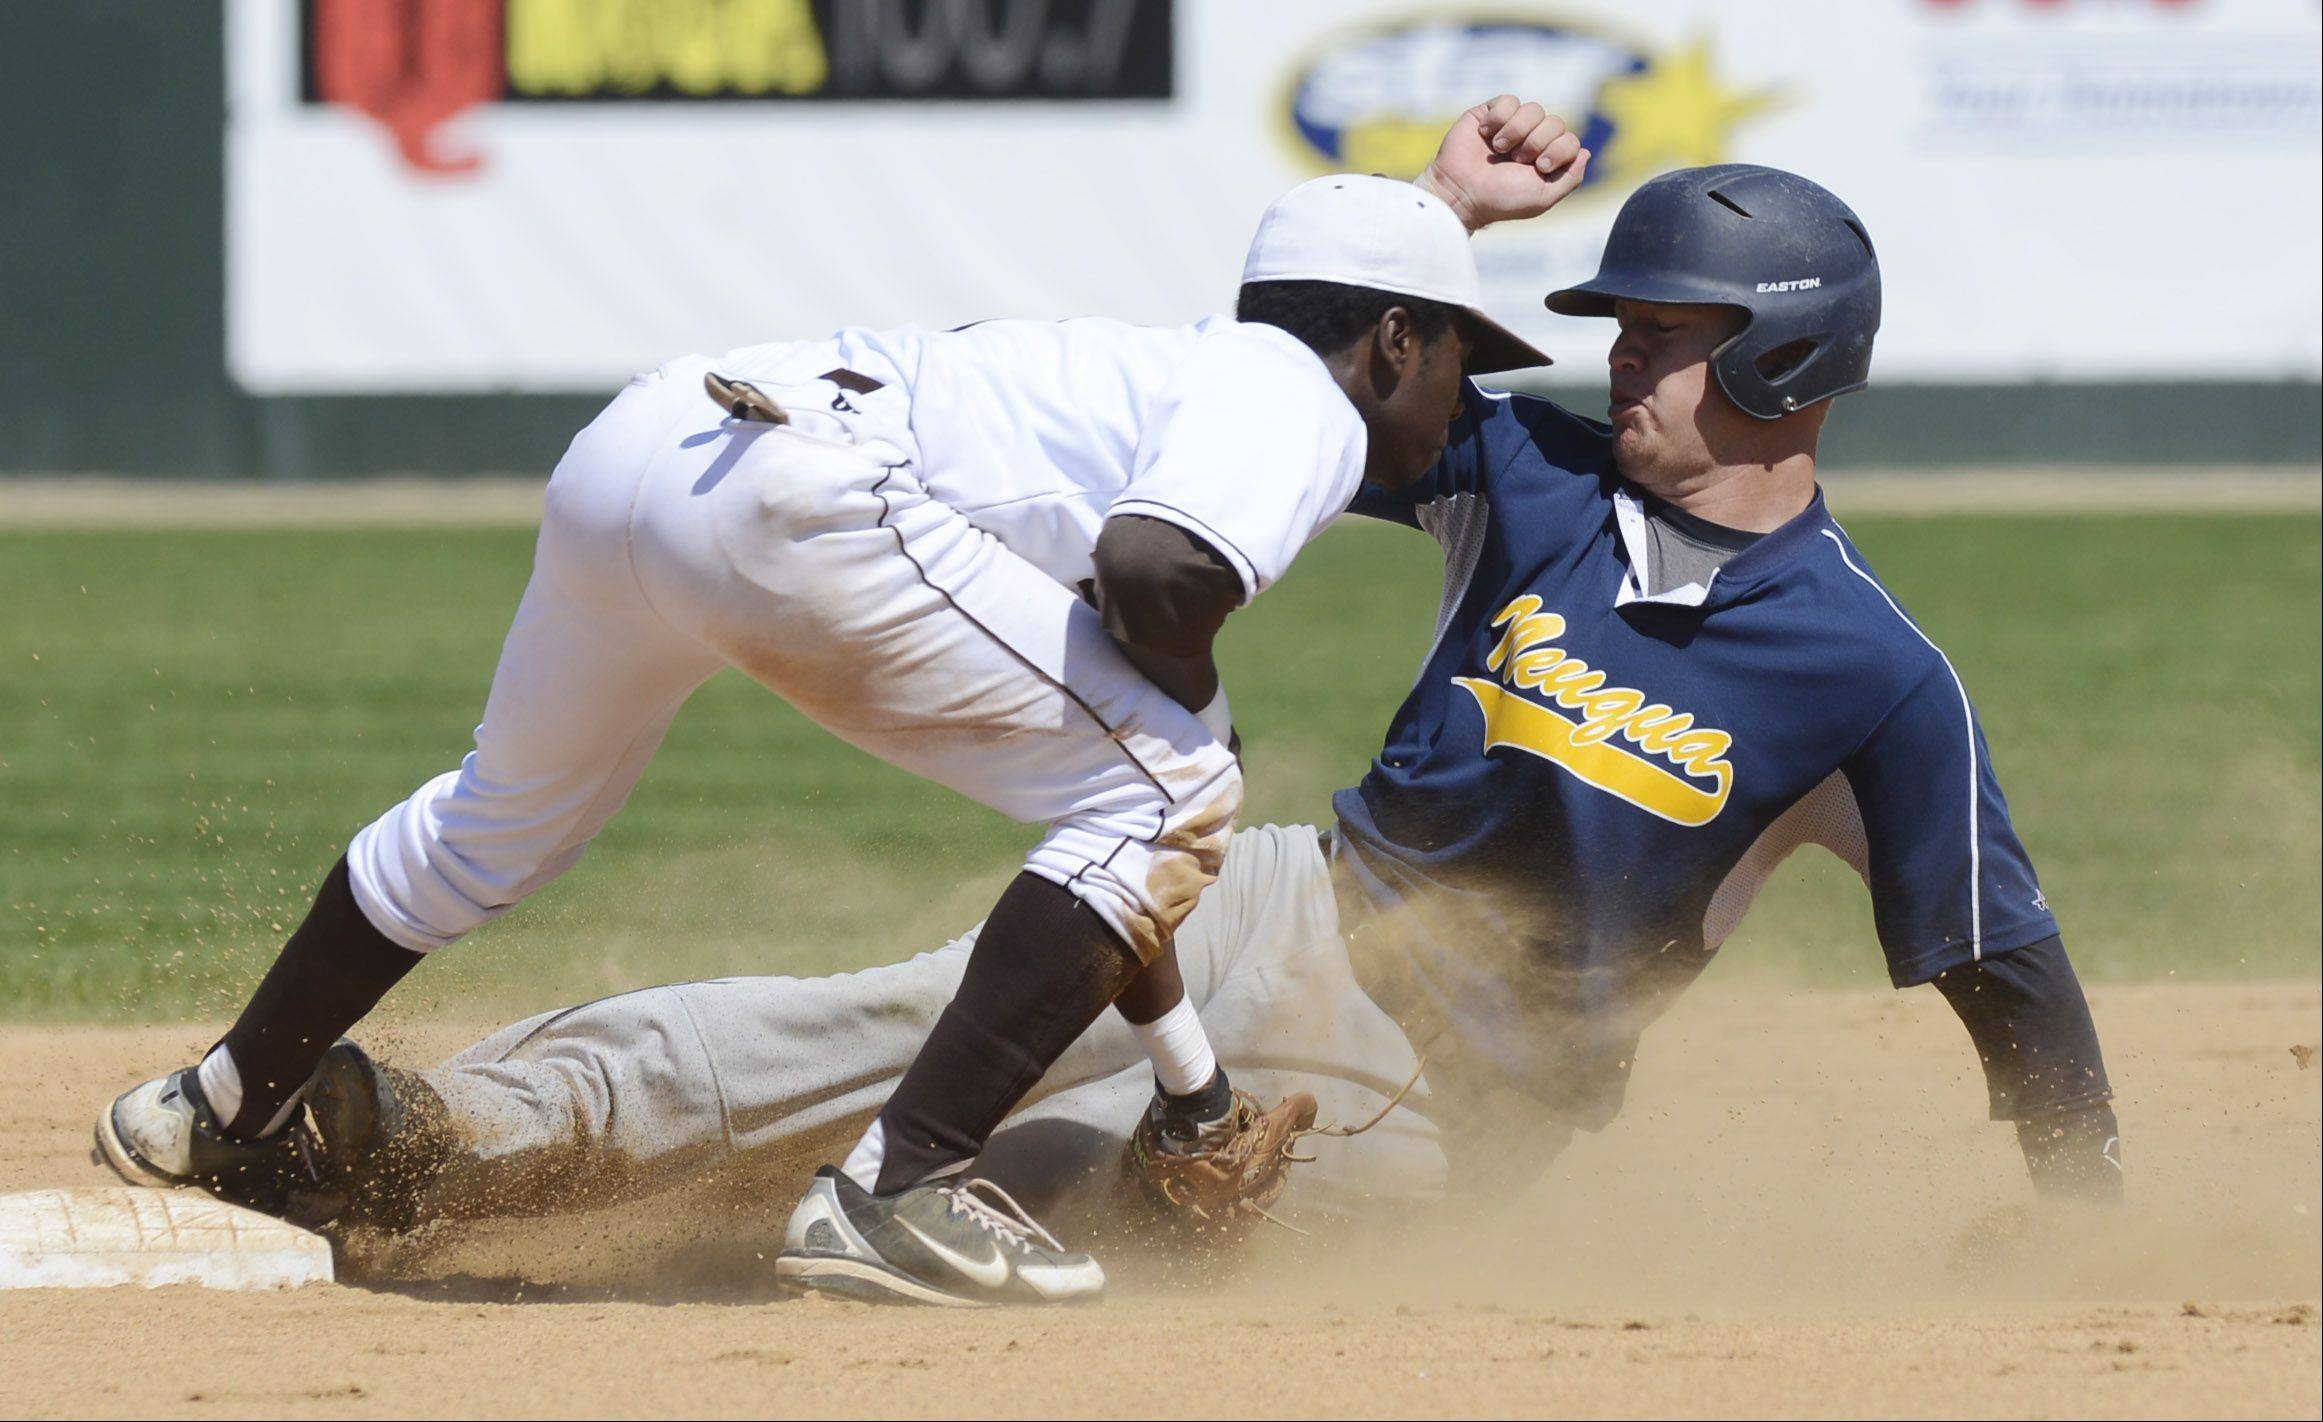 Neuqua Valley's Dylan Goss gets tagged out at second by Mt. Carmel's Jason Gasser on a first-inning steal attempt during the Class 4A state baseball semifinals at Silver Cross Field in Joliet Friday.